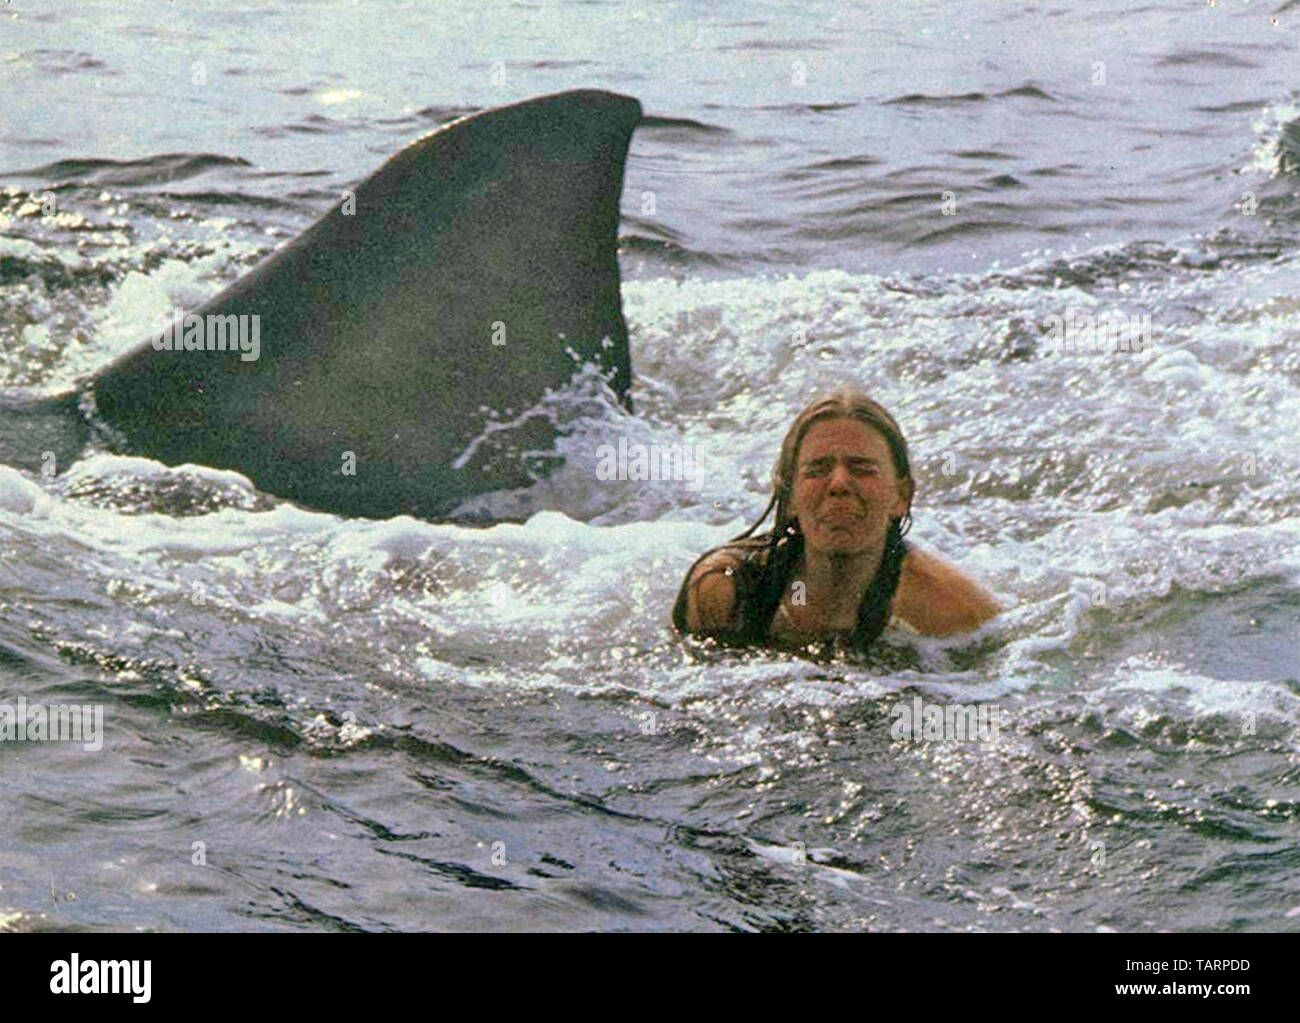 Jaws 2 1978 Universal Pictures Film With Cindy Grover Stock Photo Alamy